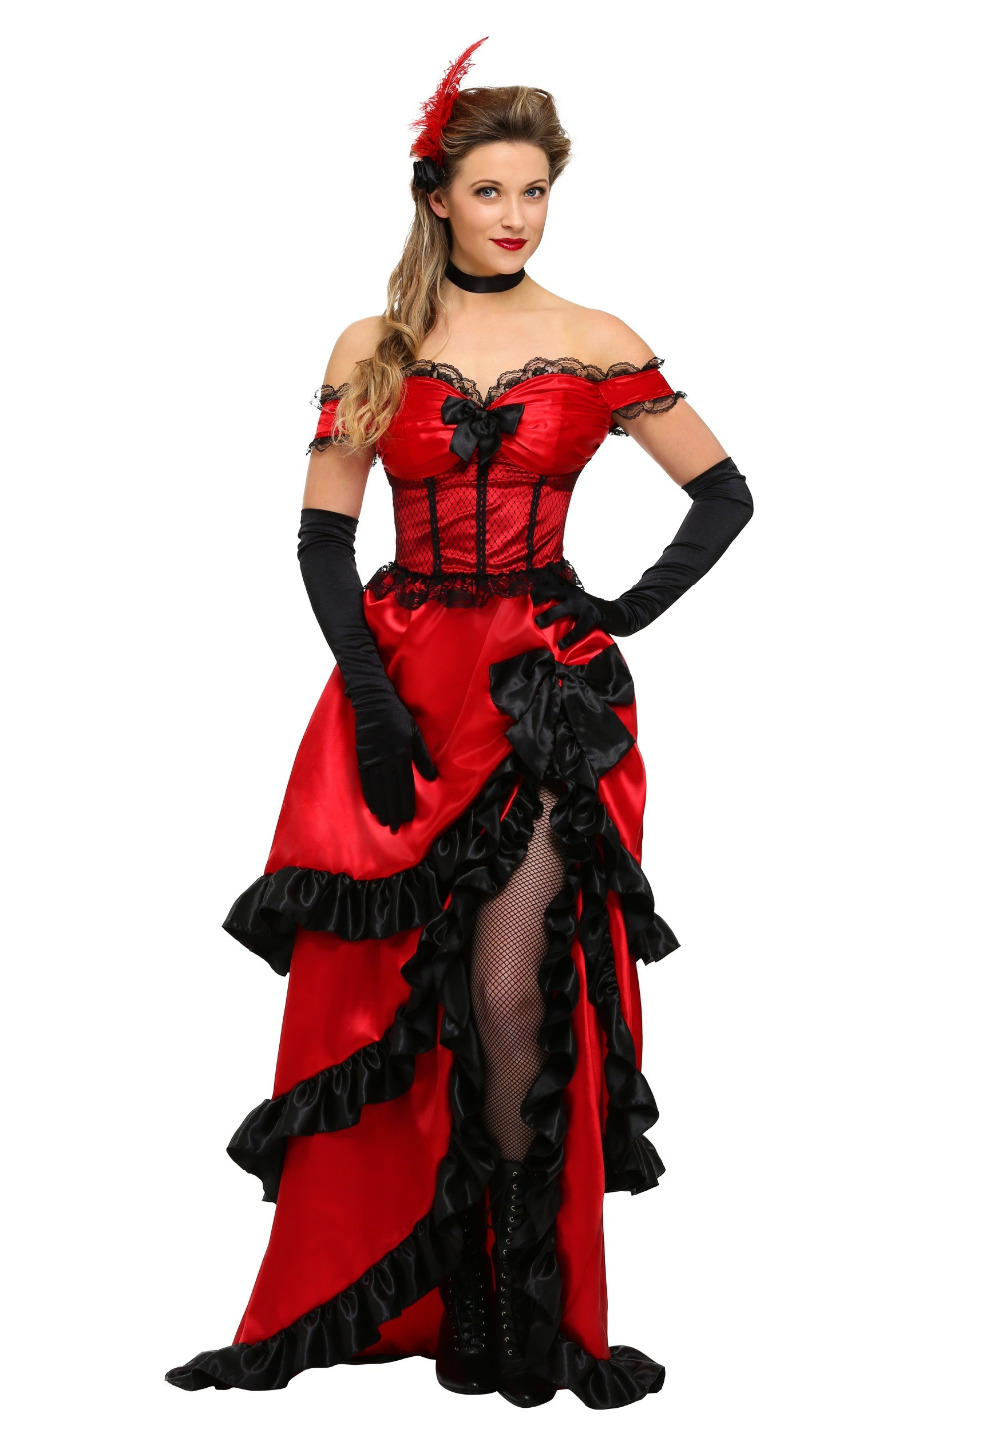 IREK adult plus-size saloon girl costume classic Halloween cosplay costume for carnival festivals luxury quality